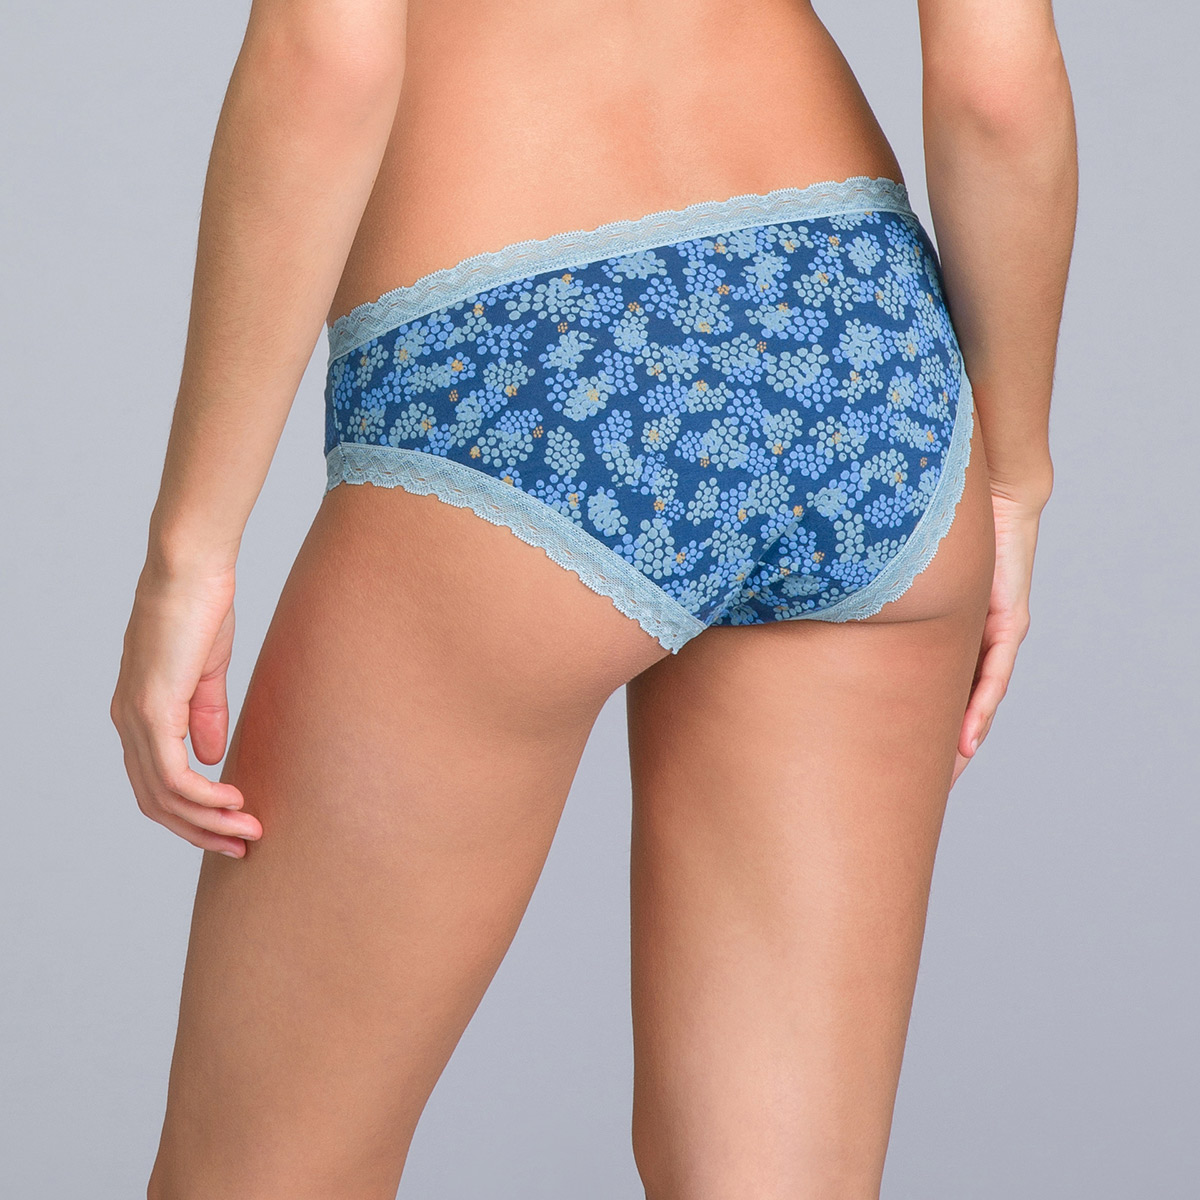 Pack of 2 Bikini Knickers in Blue Flower Print - Cotton Fancy - PLAYTEX